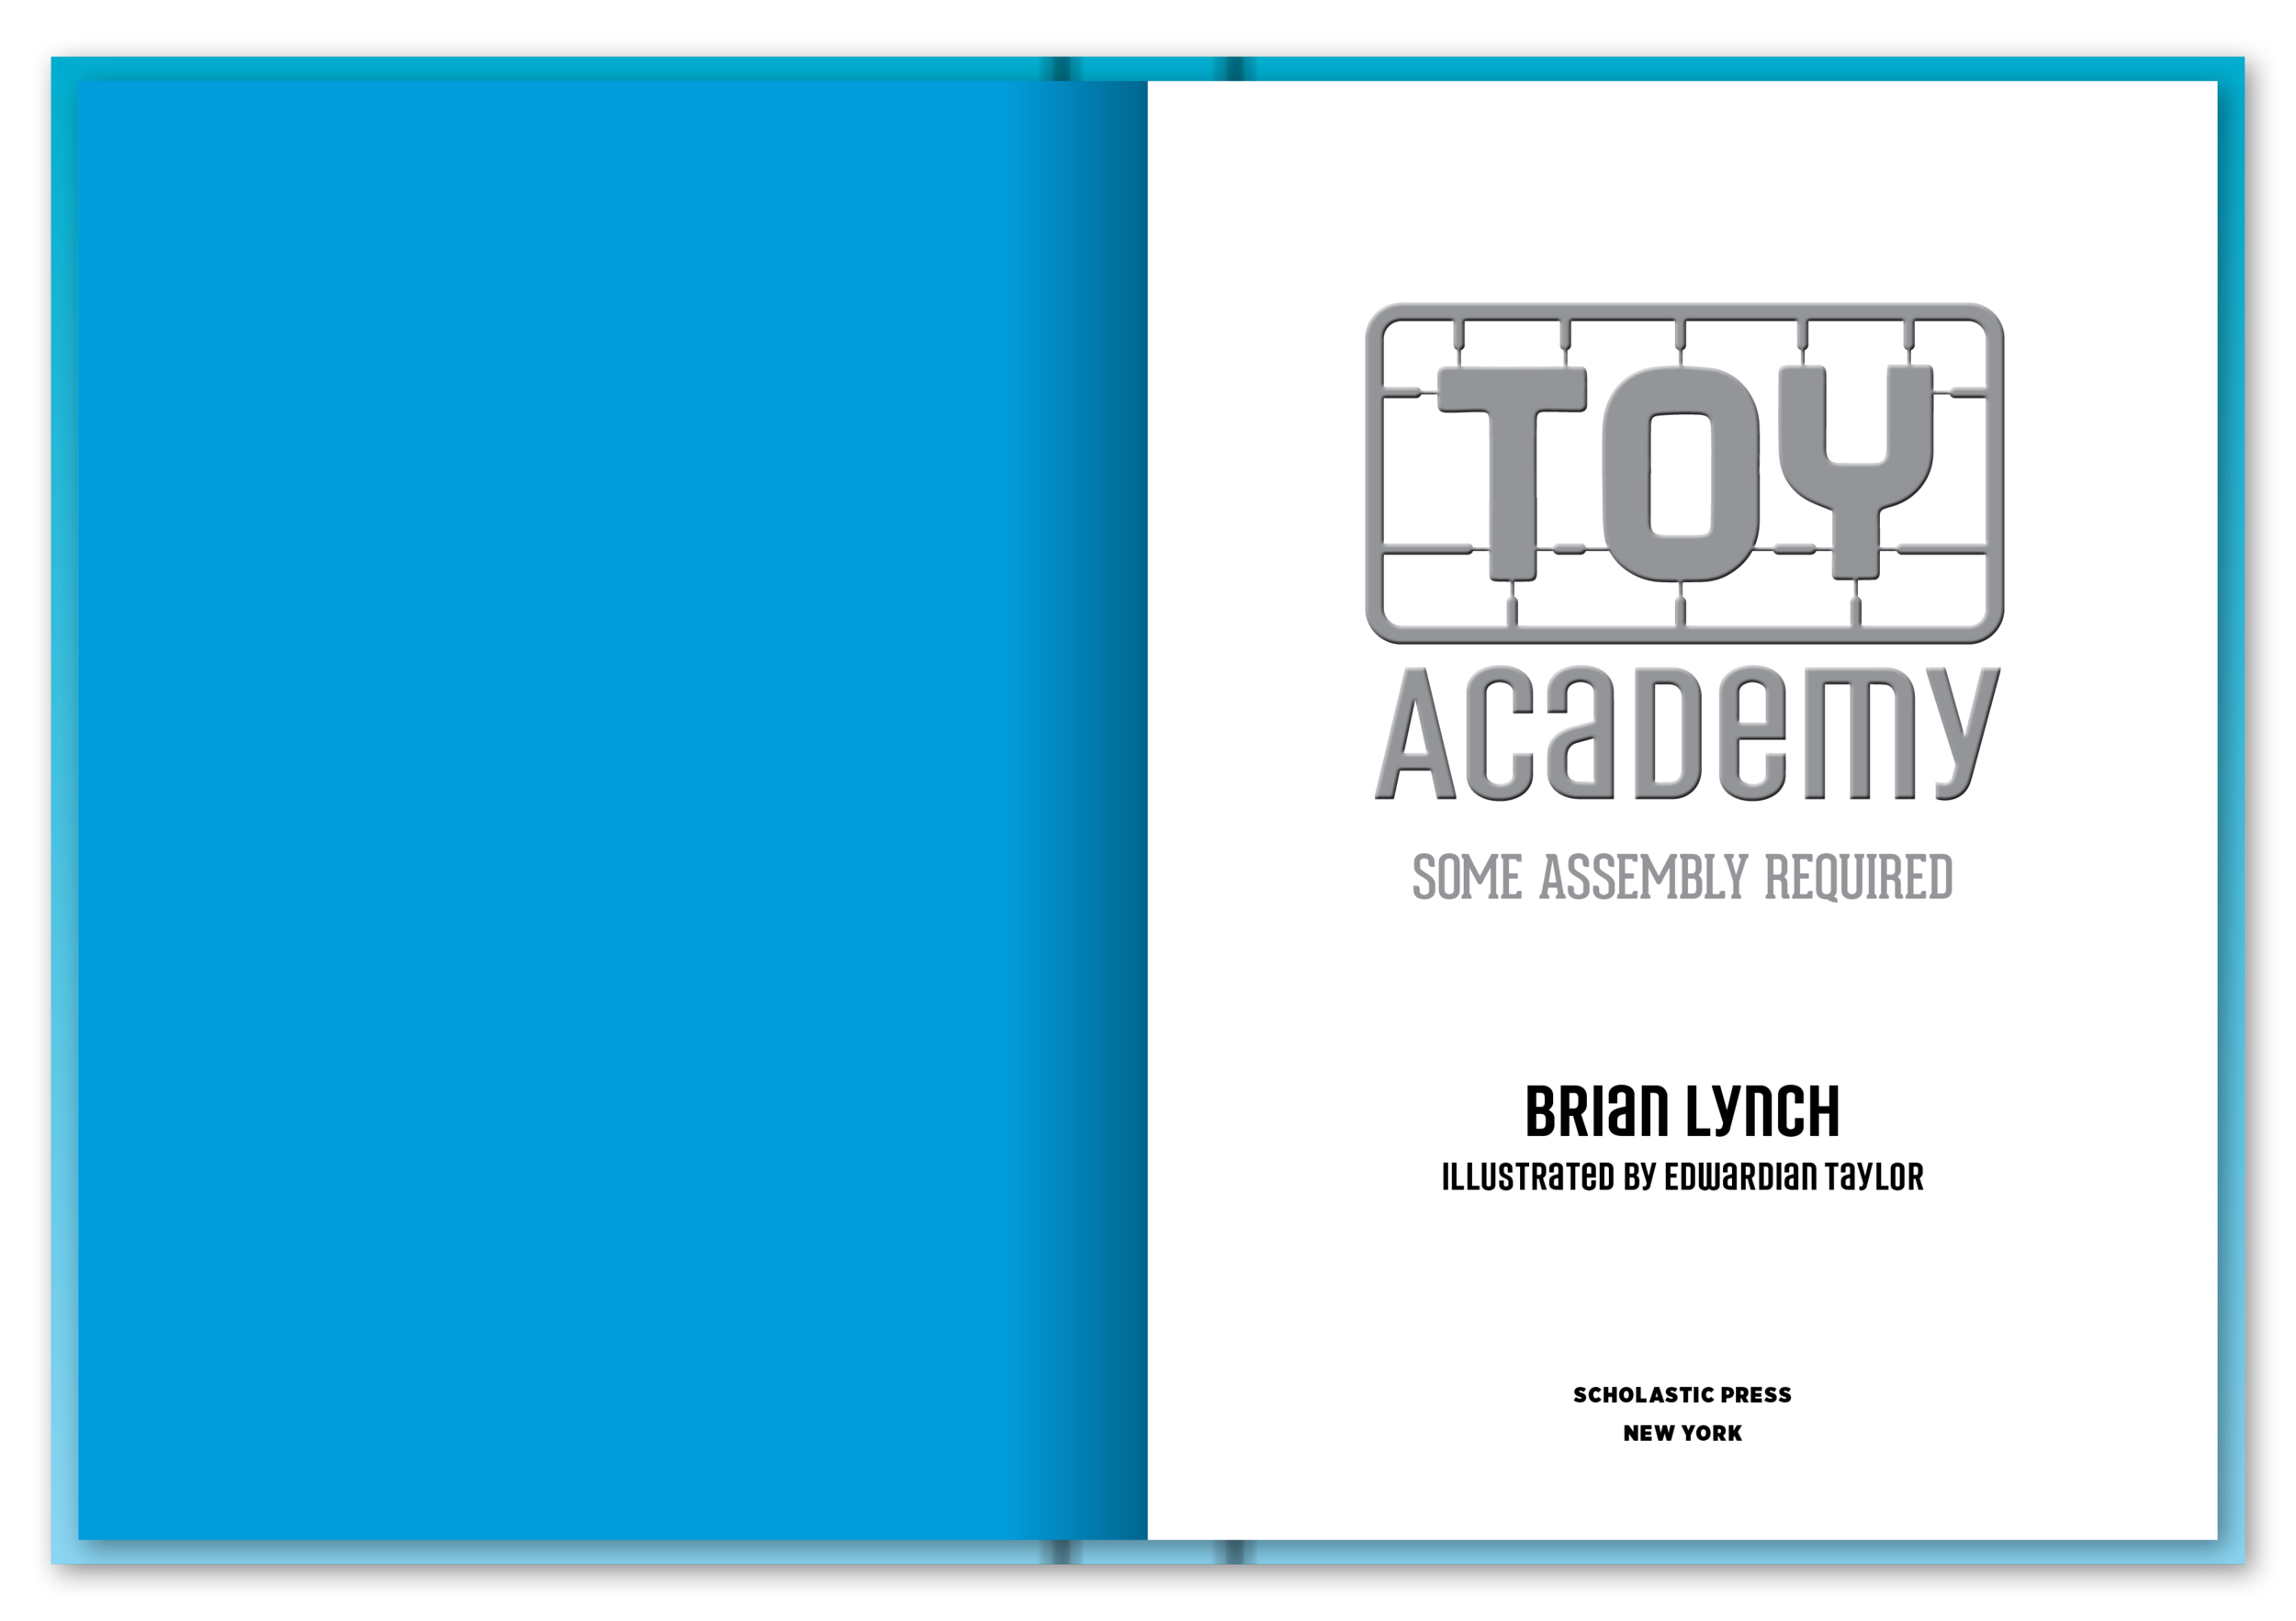 ToyAcademy_int2.png